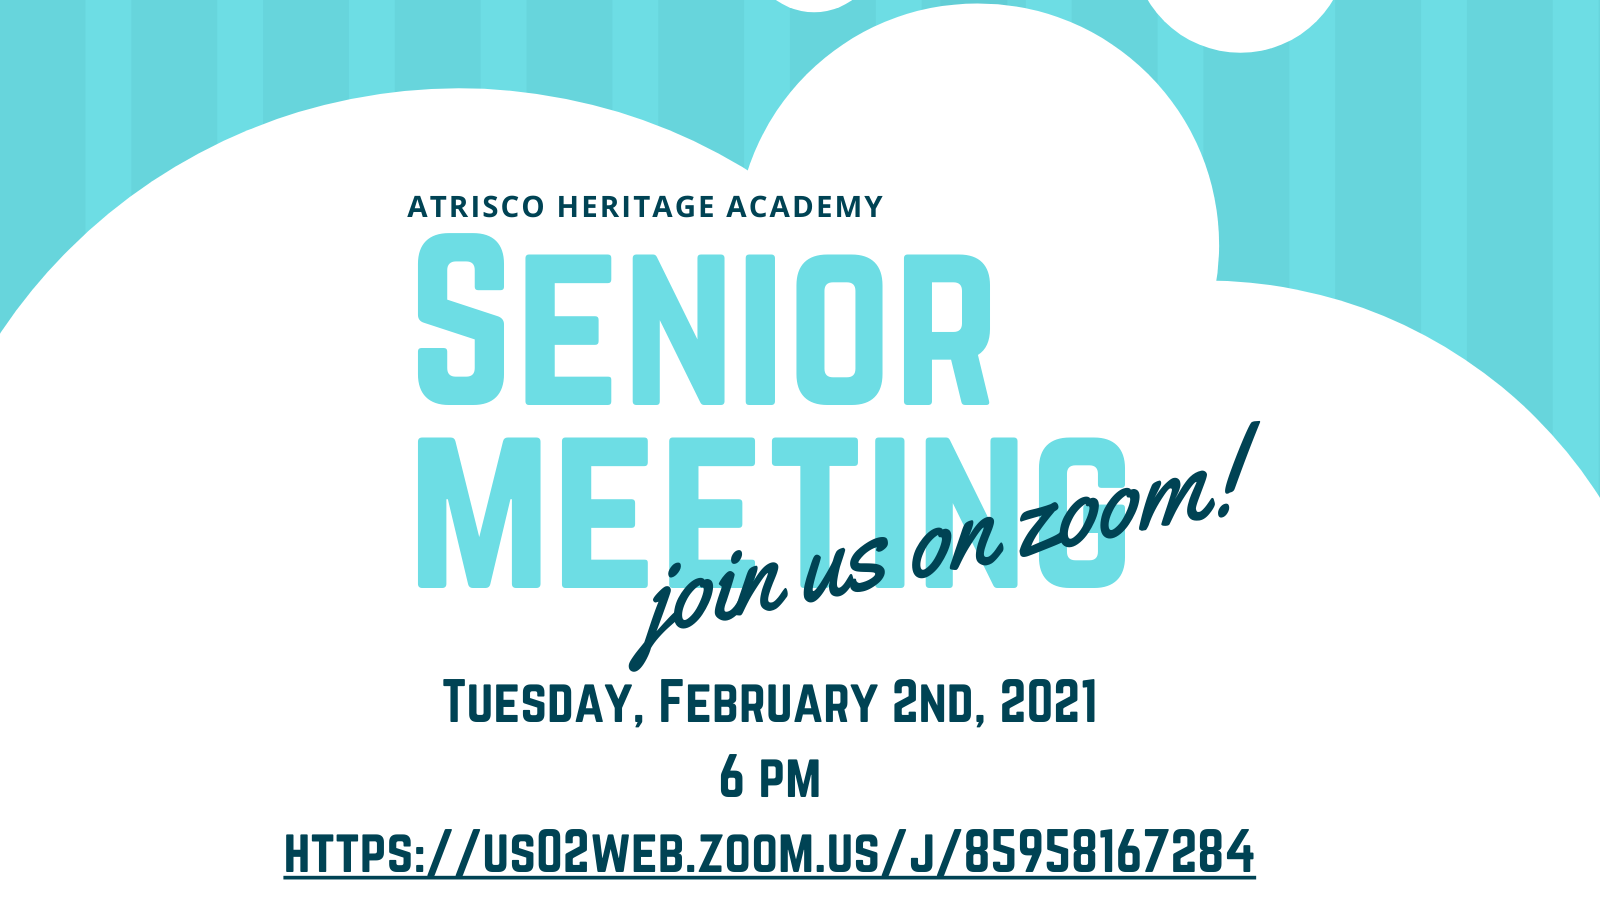 Next Senior Meeting is February 2nd